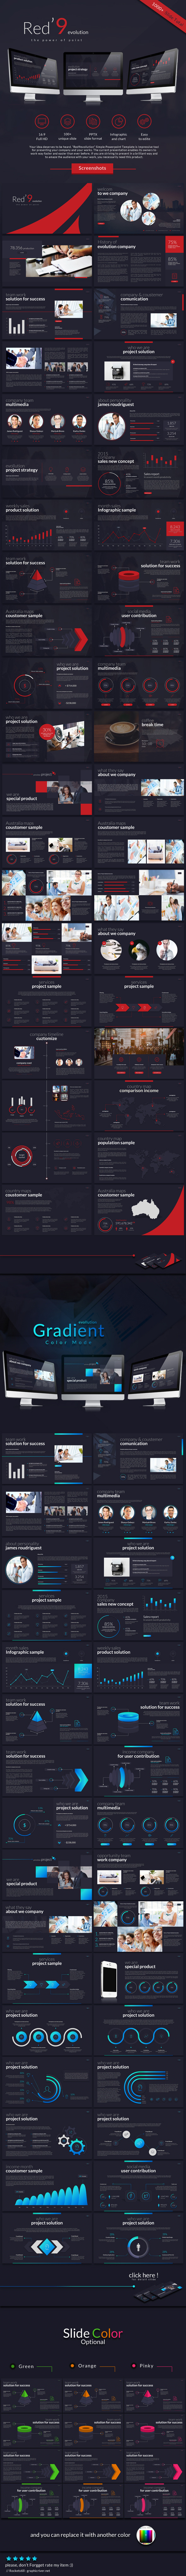 GraphicRiver Red 9evolution powerpoint 11447576